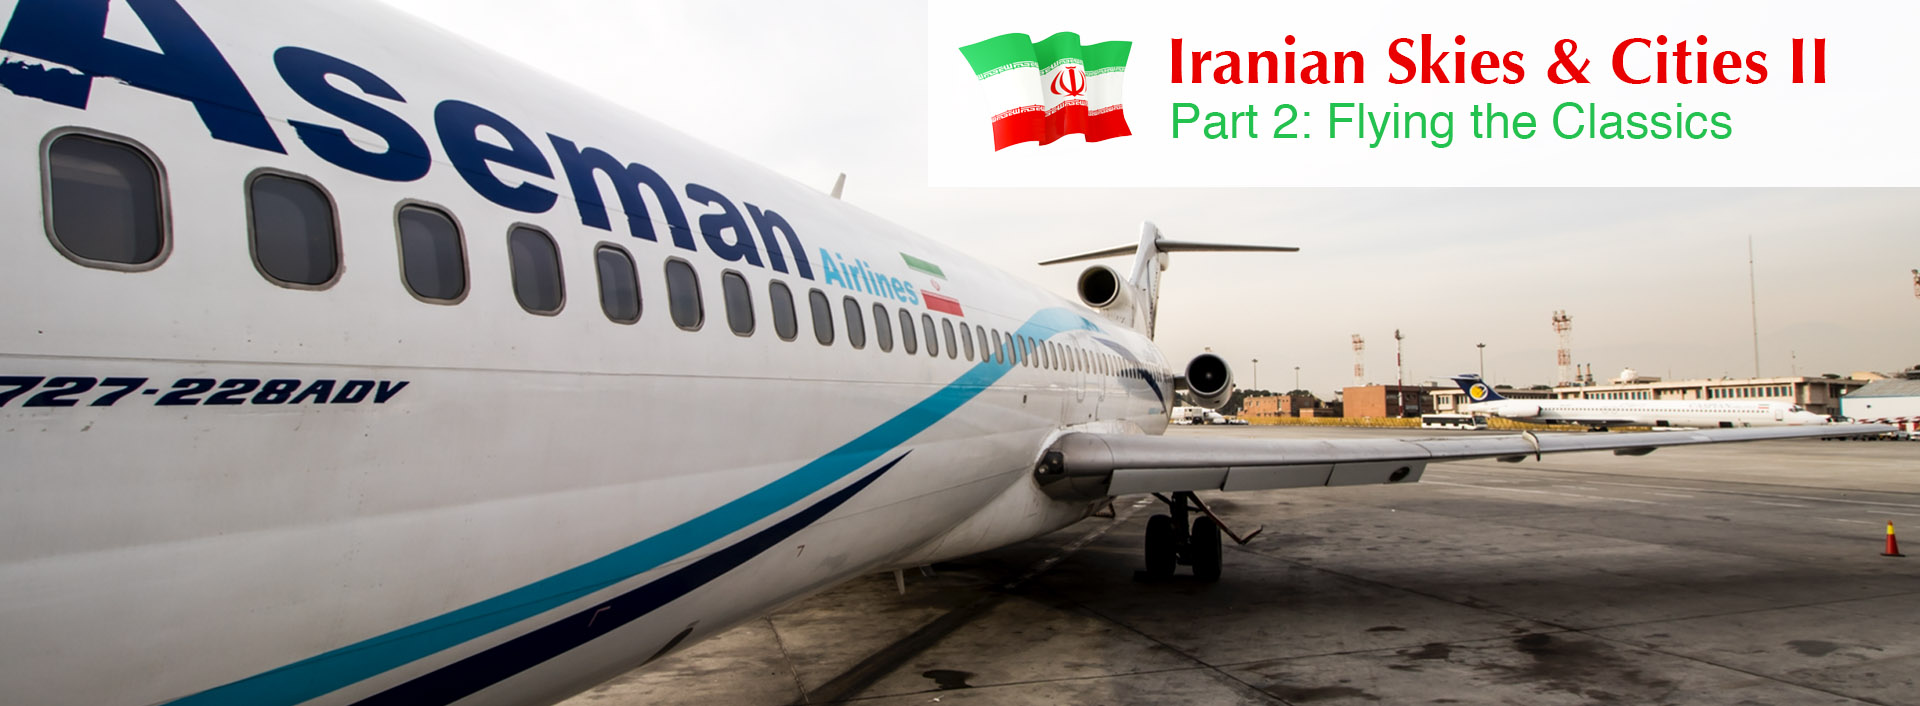 Iranian Skies & Cities II: Flying the Classics